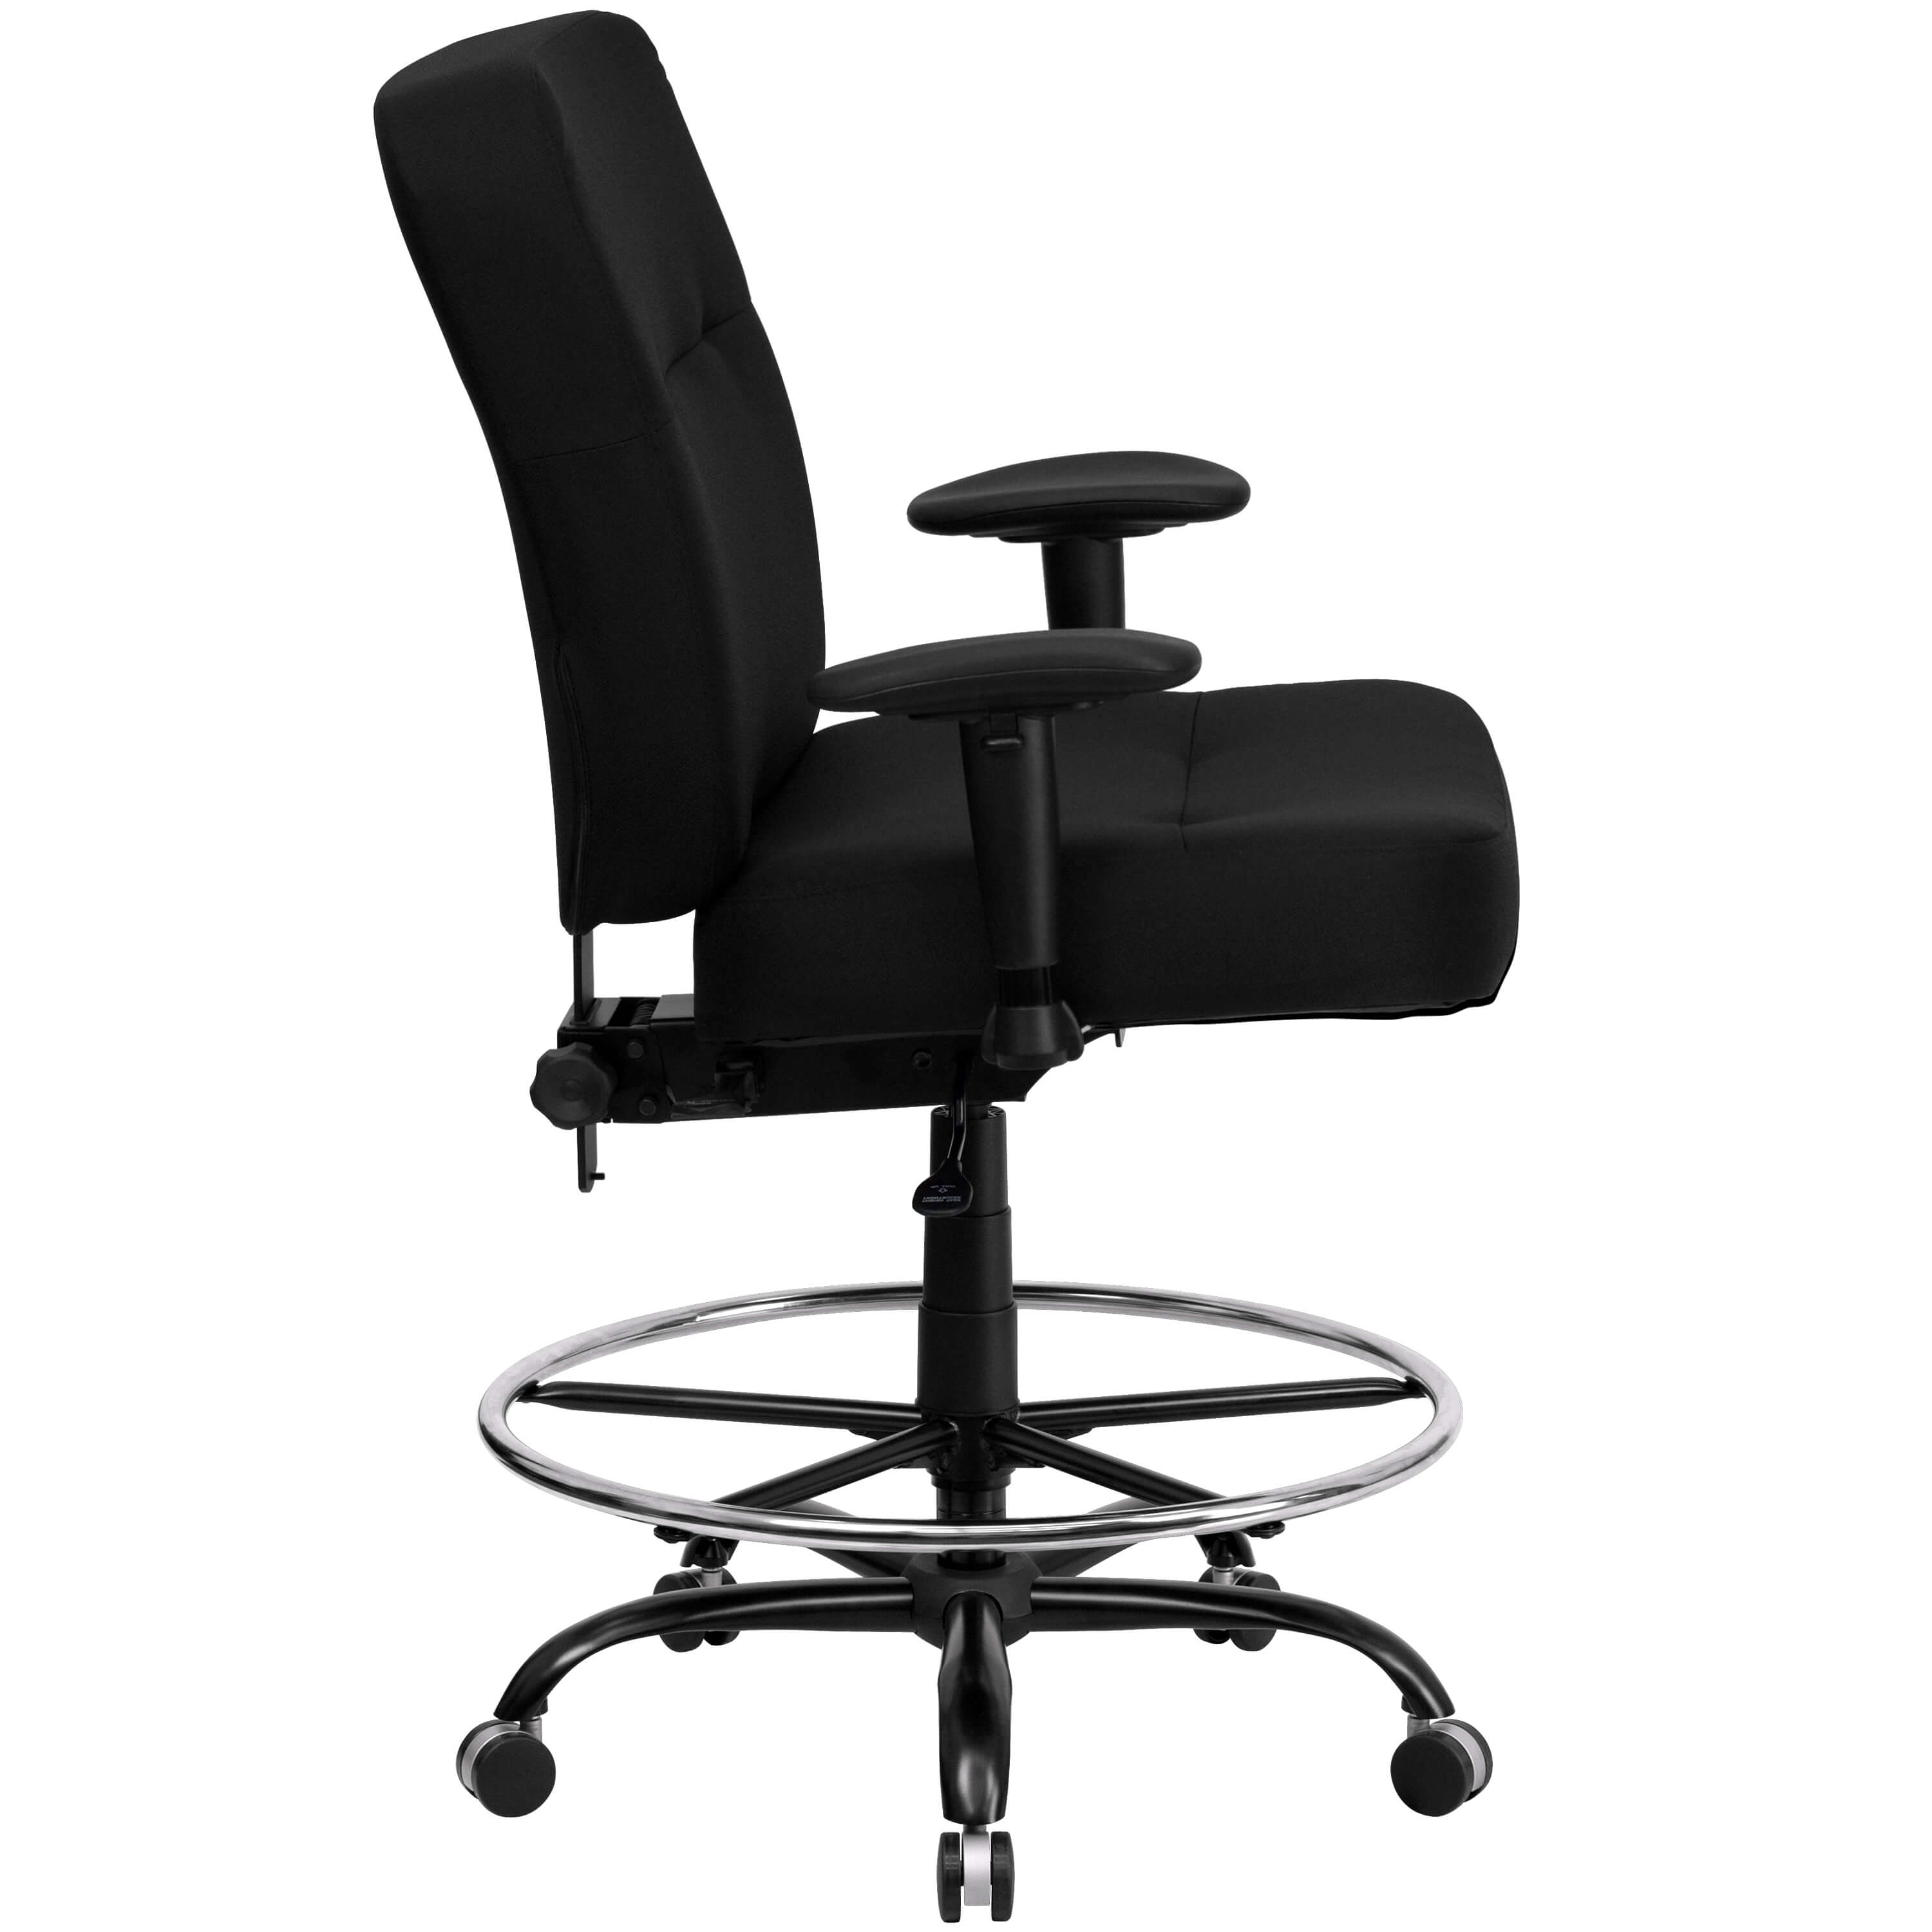 Large size office chairs side view